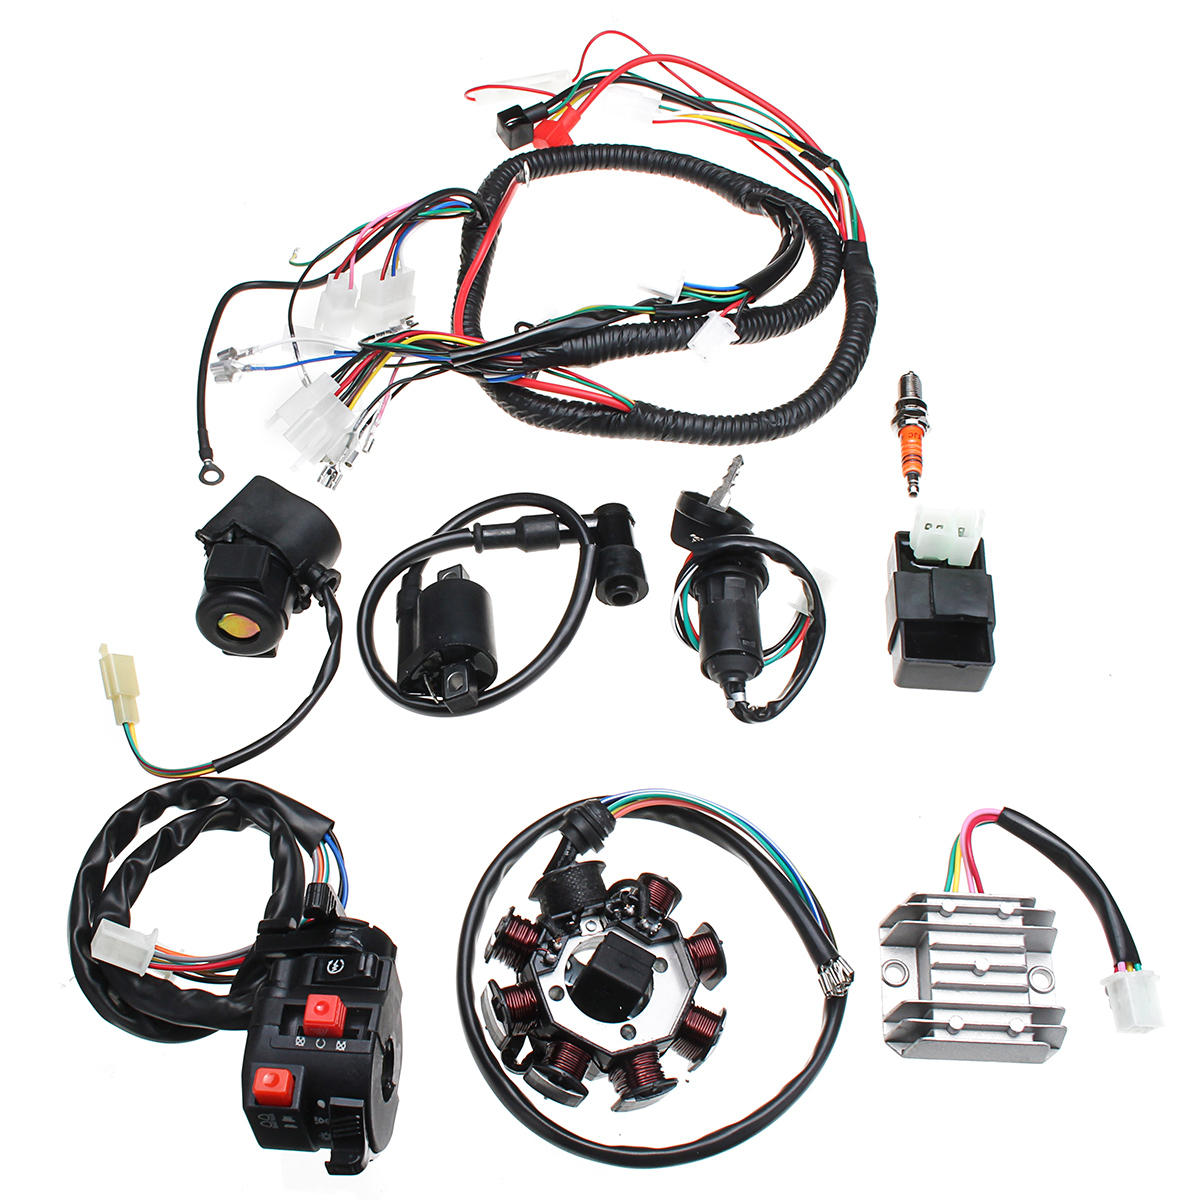 Electric Wiring Harness Wire Loom Cdi Motor Stator Full Set For